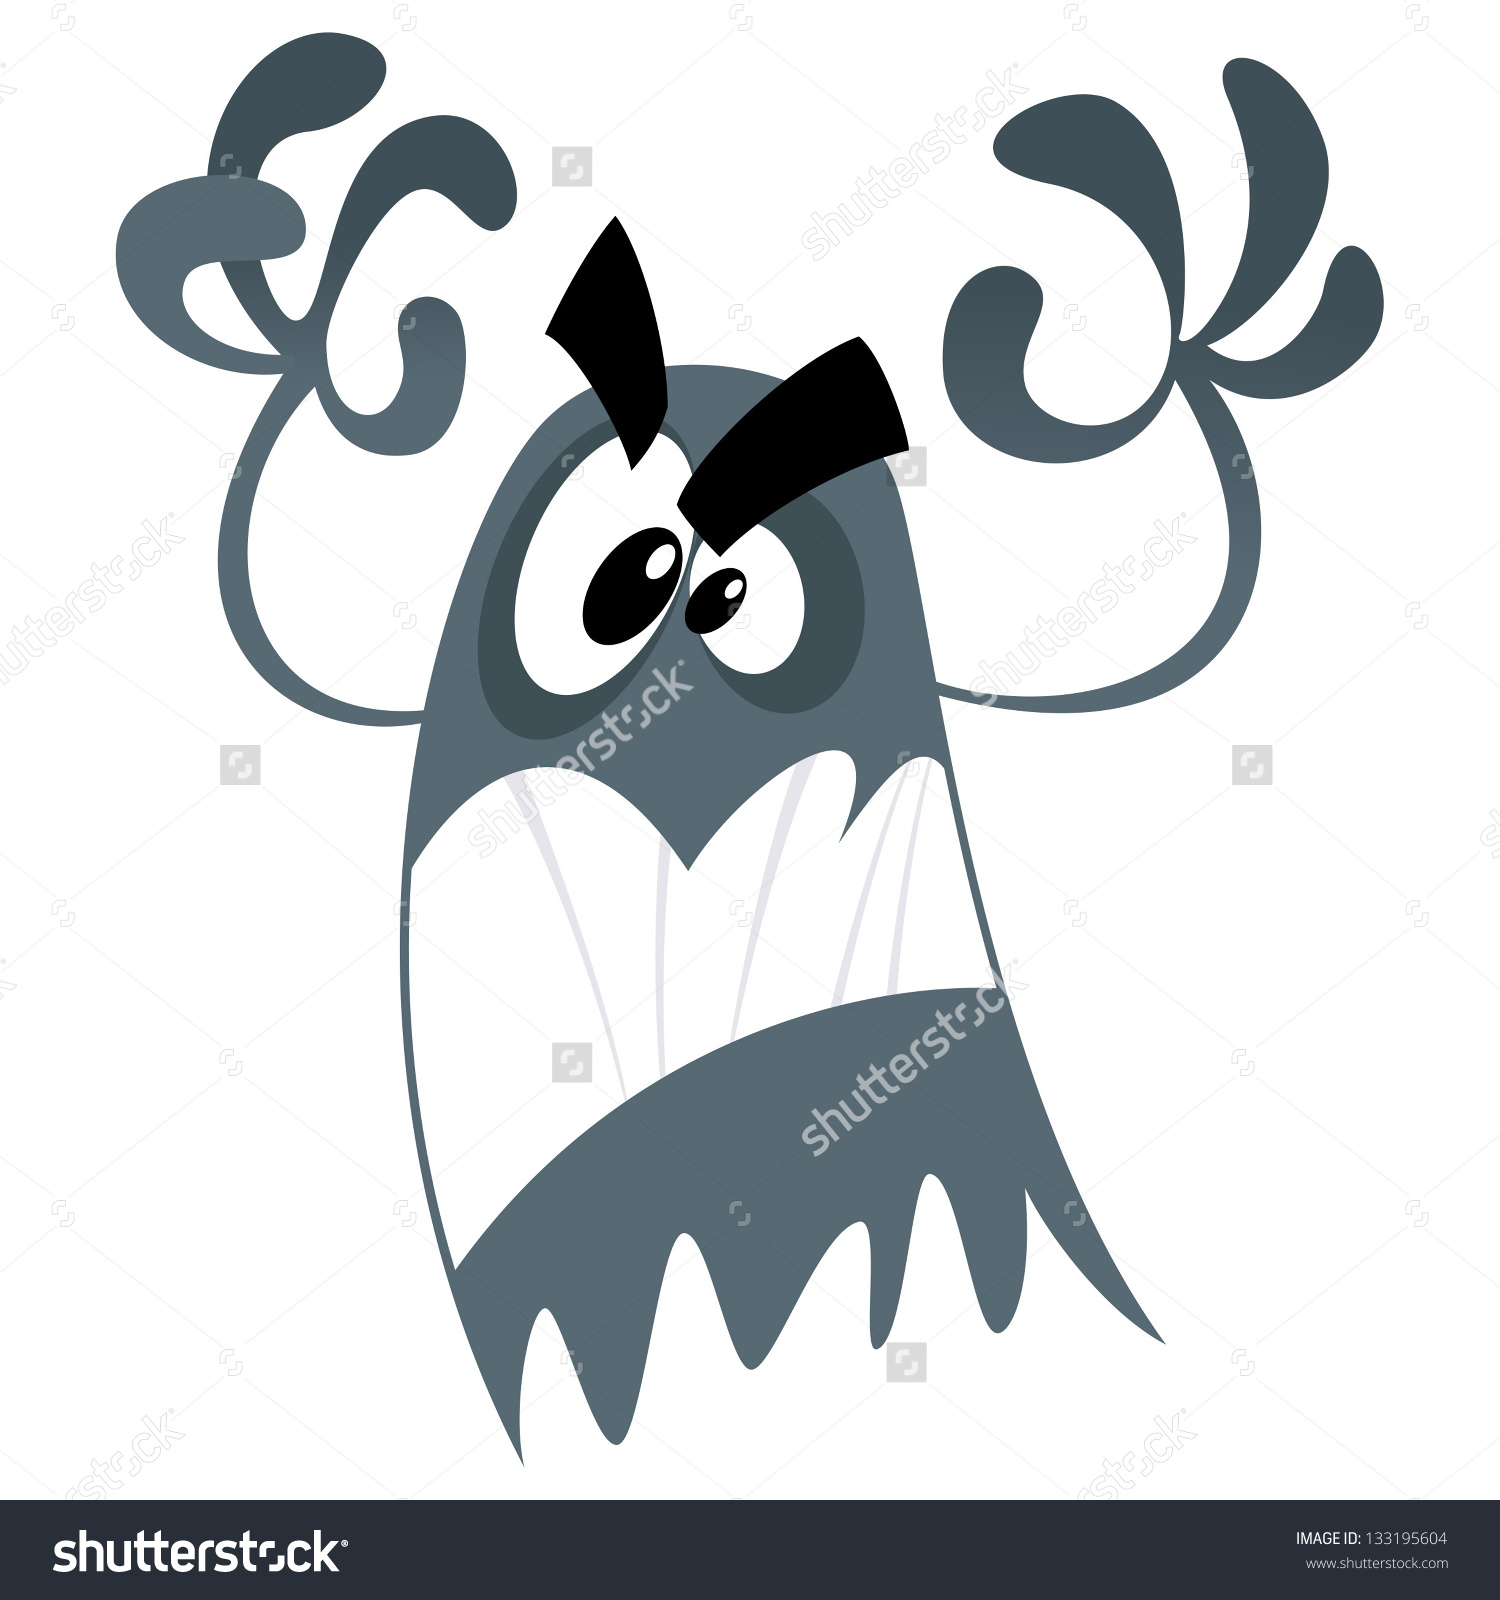 Ghostly clipart fears Cute No Ghost Cartoon Scary